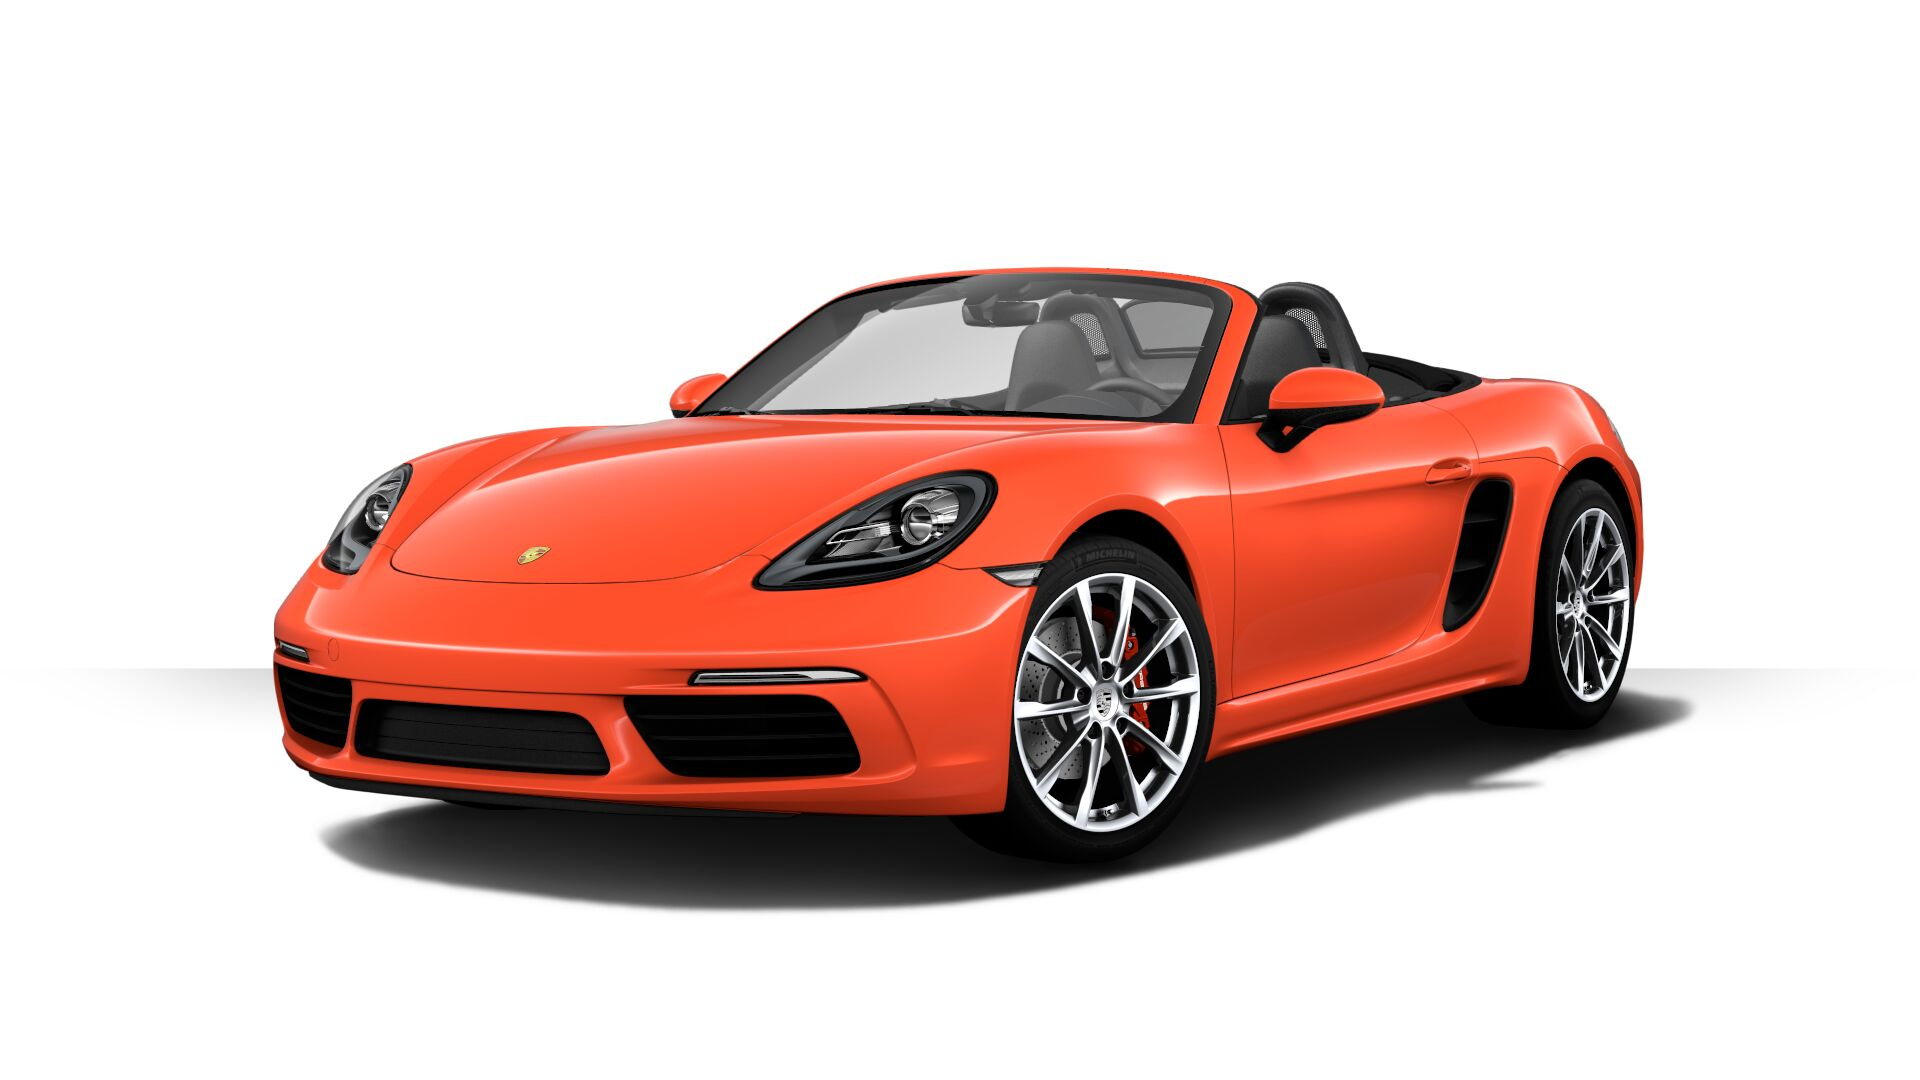 Porsche 718 Specifications, Price, Mileage, Pics, Review